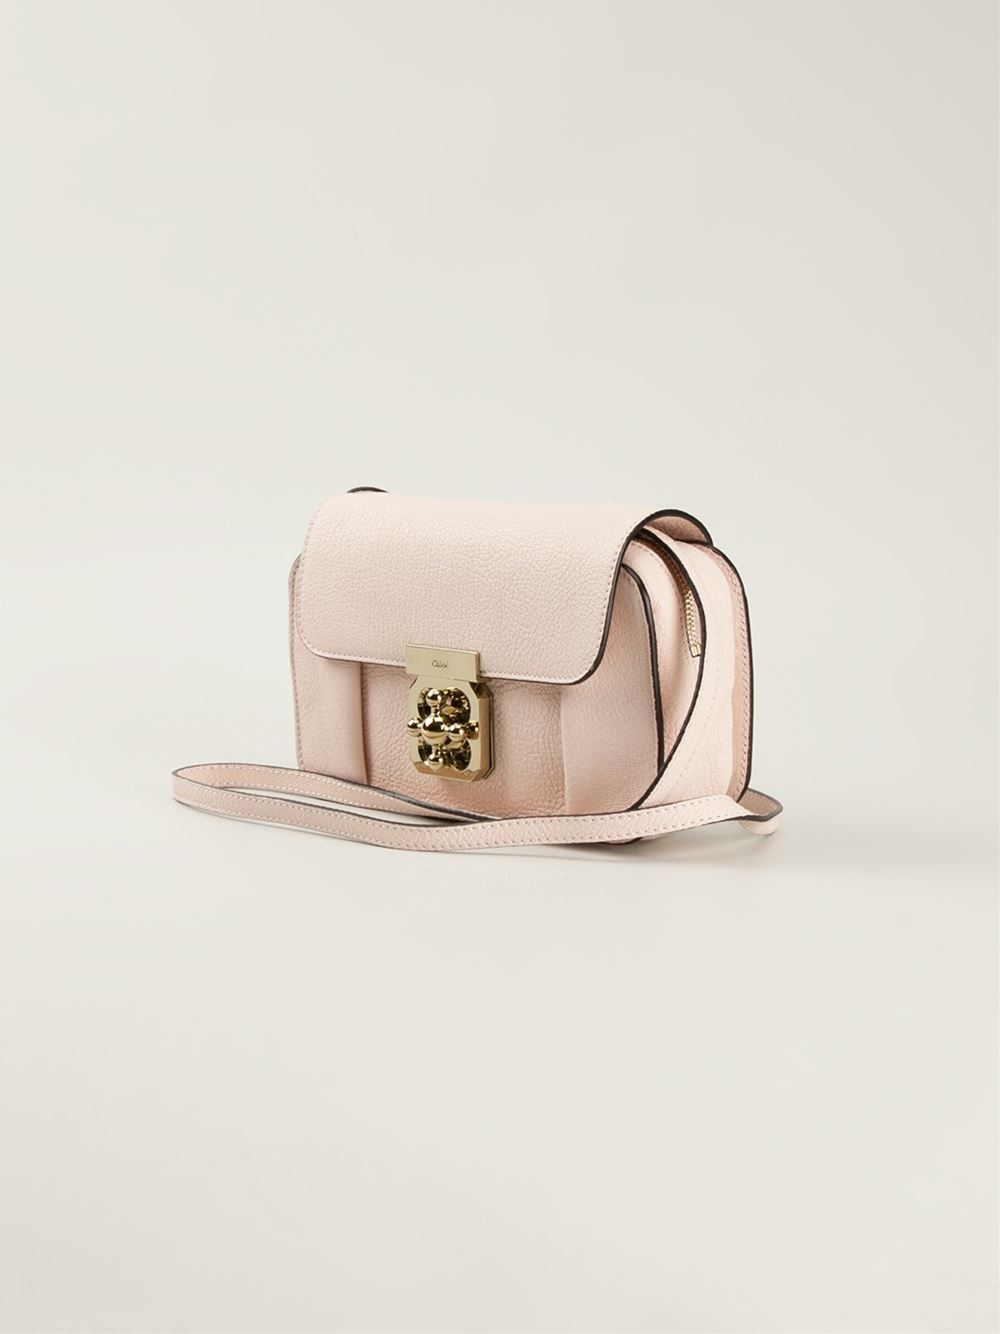 Chlo�� \u0026#39;Elsie\u0026#39; Cross Body Bag in Pink (pink \u0026amp; purple) | Lyst